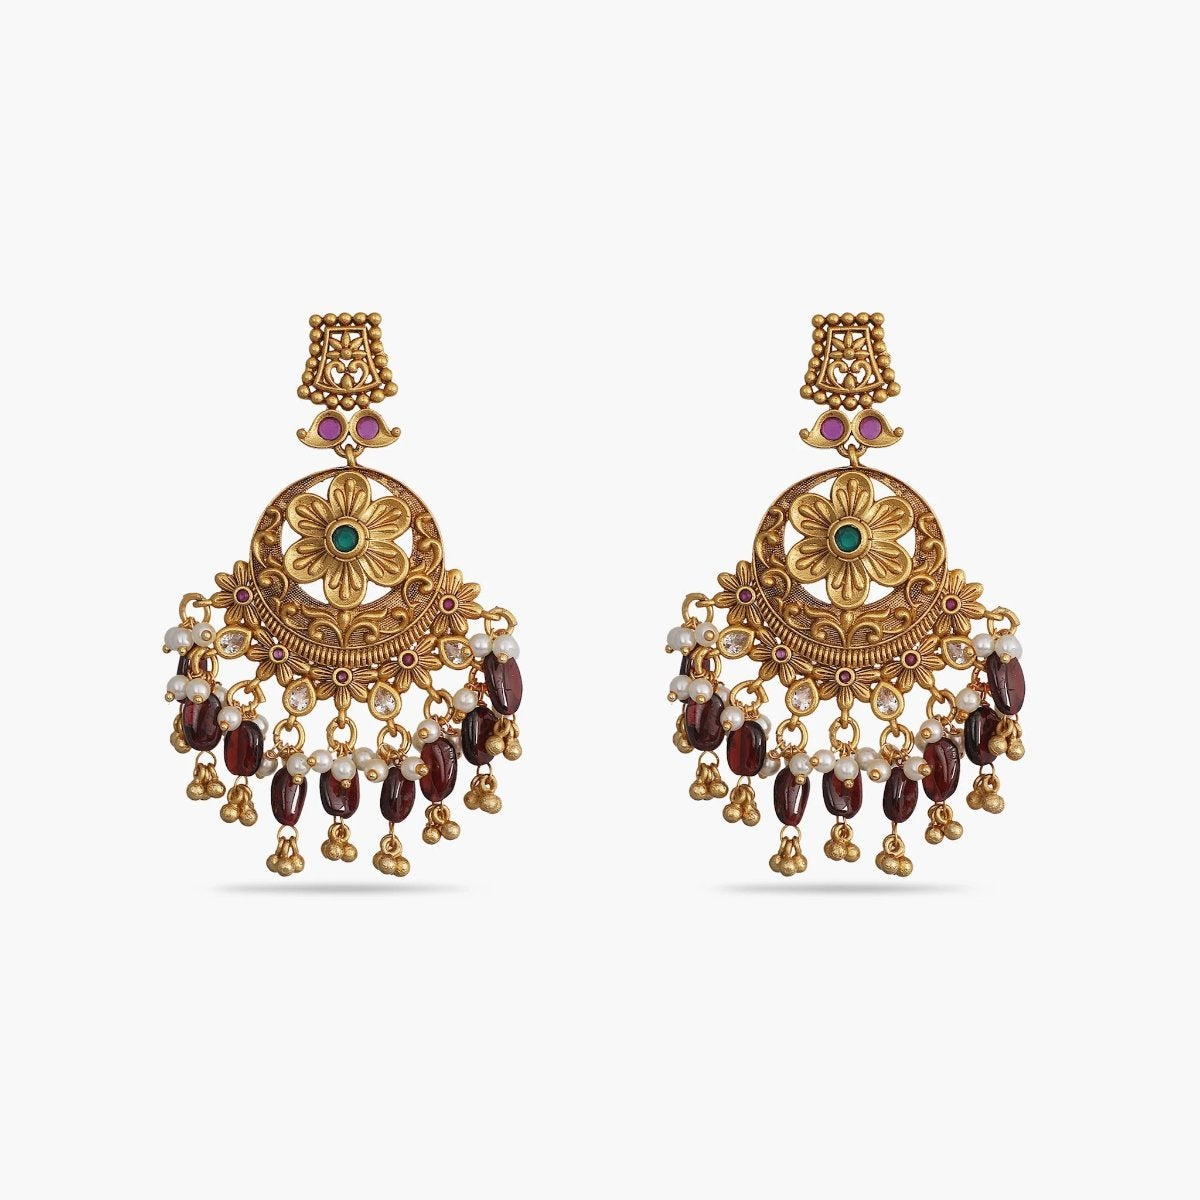 Paavana Antique Earrrings